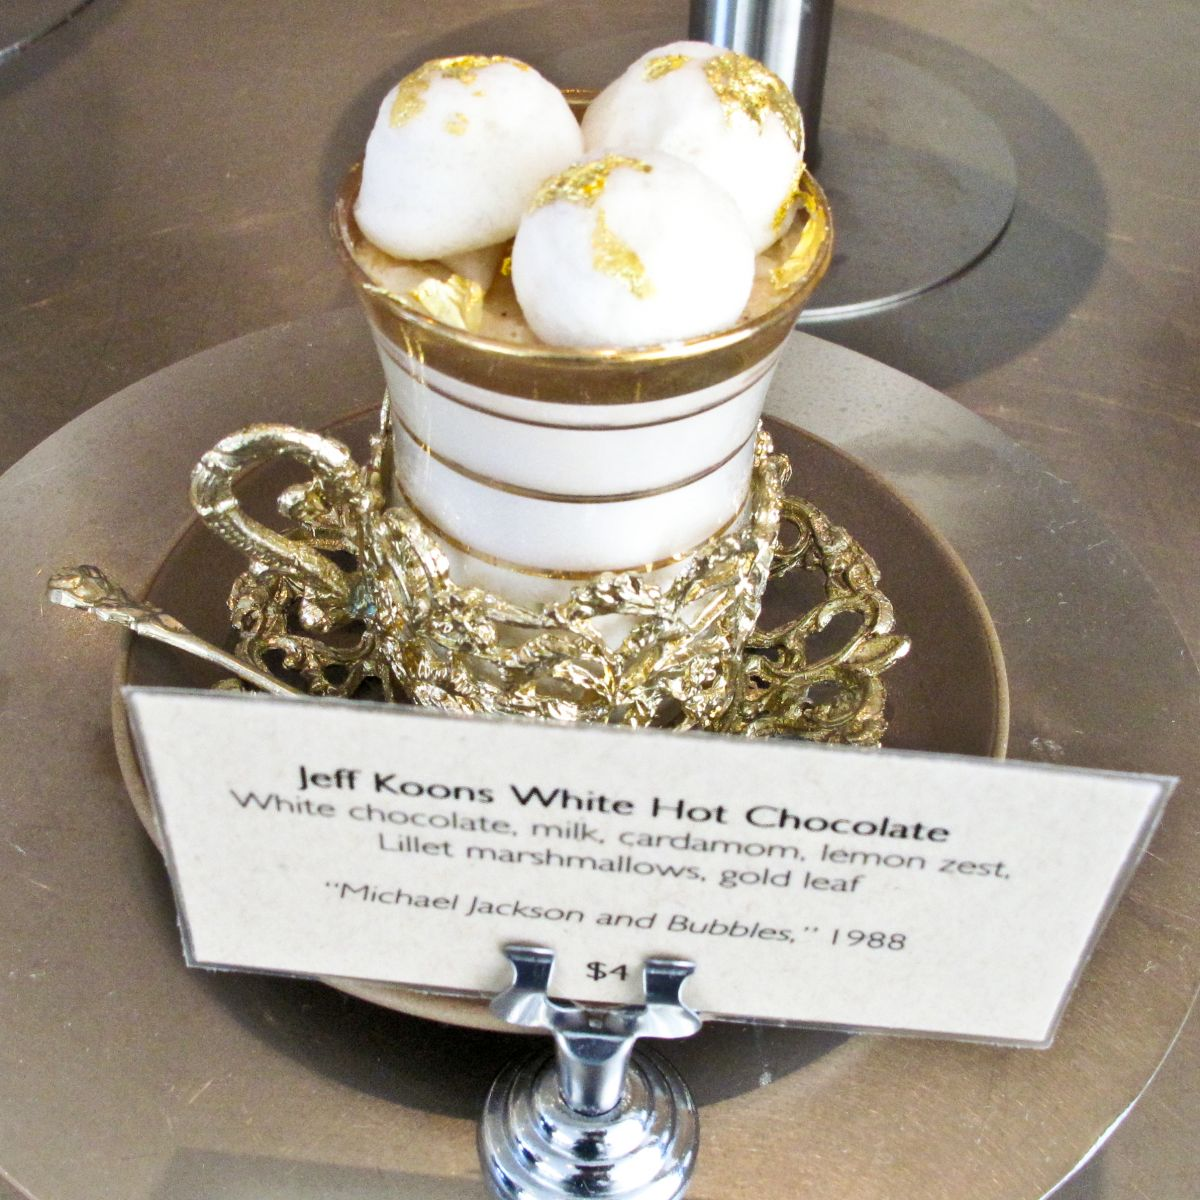 Jeff Koons Hot Chocolate